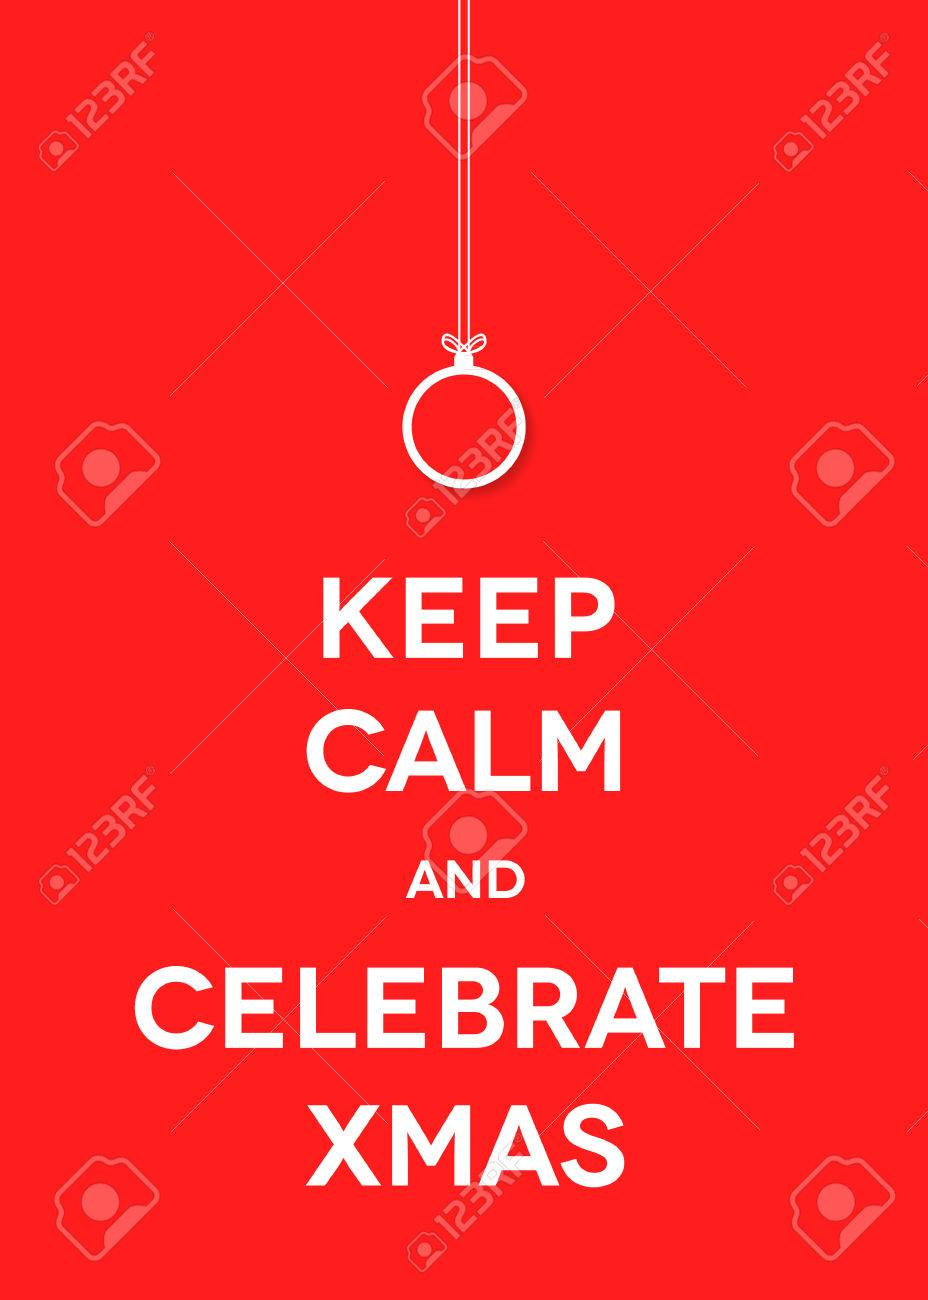 Christmas Card. Keep Calm And Celebrate Xmas. Eps 10 Vector ...